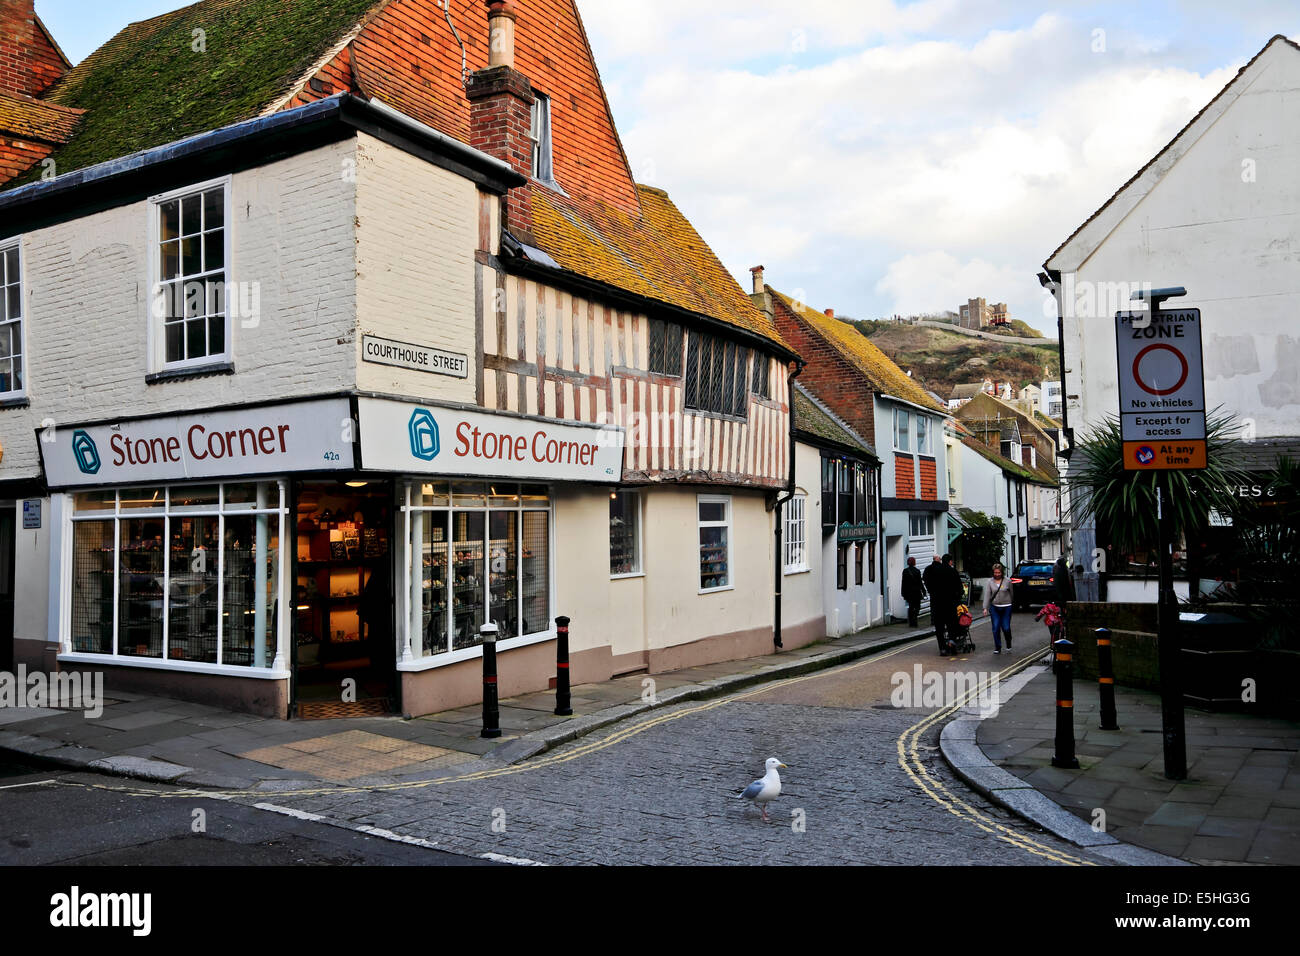 9514. Shop & Courthouse Street, Old Town, Hastings, East Sussex - Stock Image